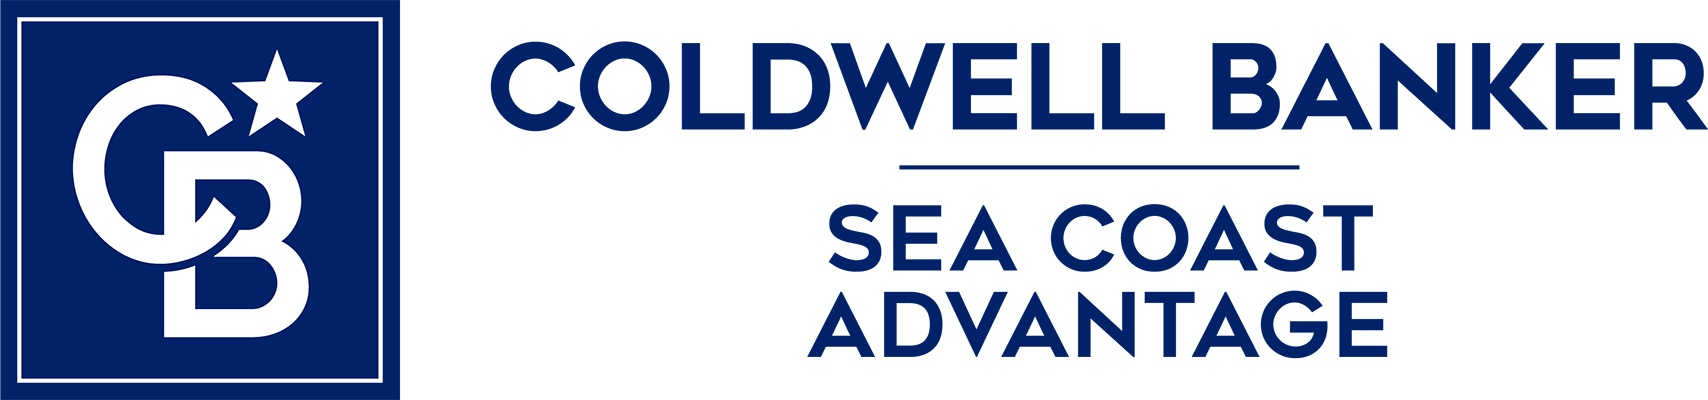 Julie Chappell - Coldwell Banker Sea Coast Advantage Realty